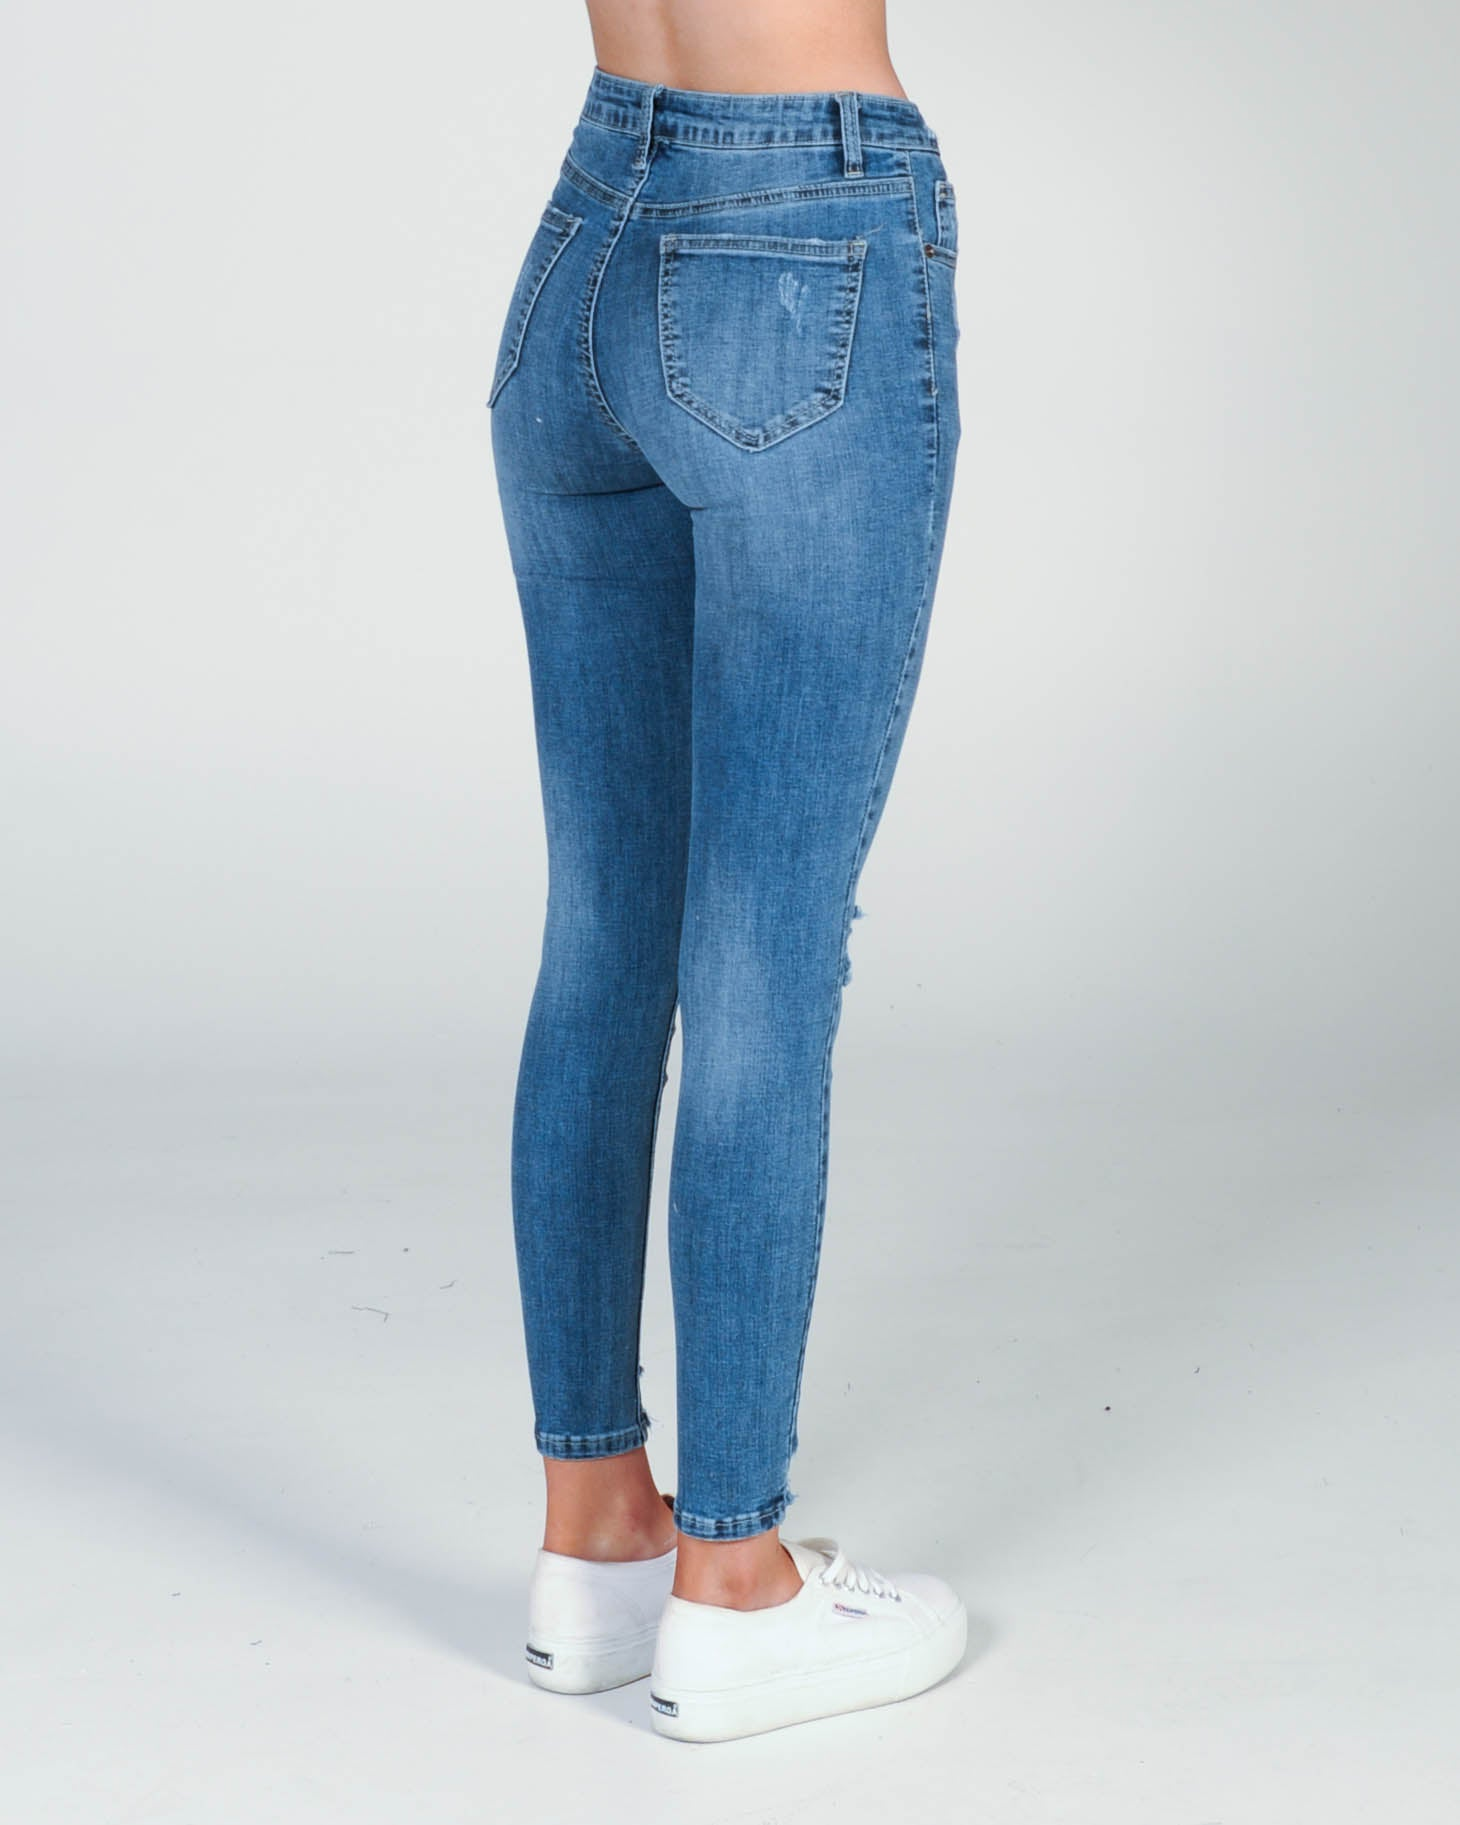 Nebraska Distressed Jean - Blue